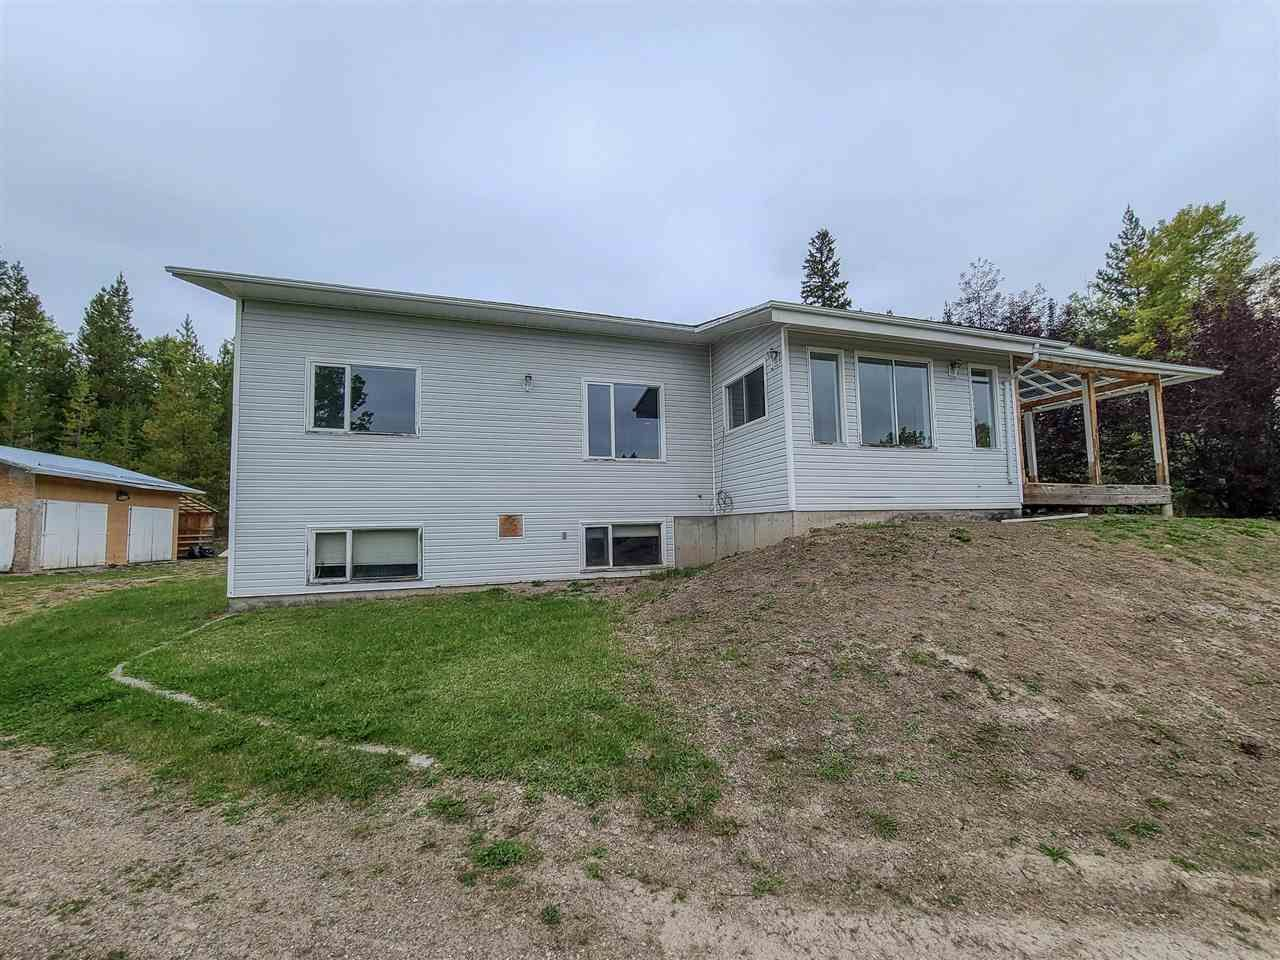 """Main Photo: 13330 MILES Road in Prince George: Beaverley House for sale in """"BEAVERLY"""" (PG Rural West (Zone 77))  : MLS®# R2498202"""